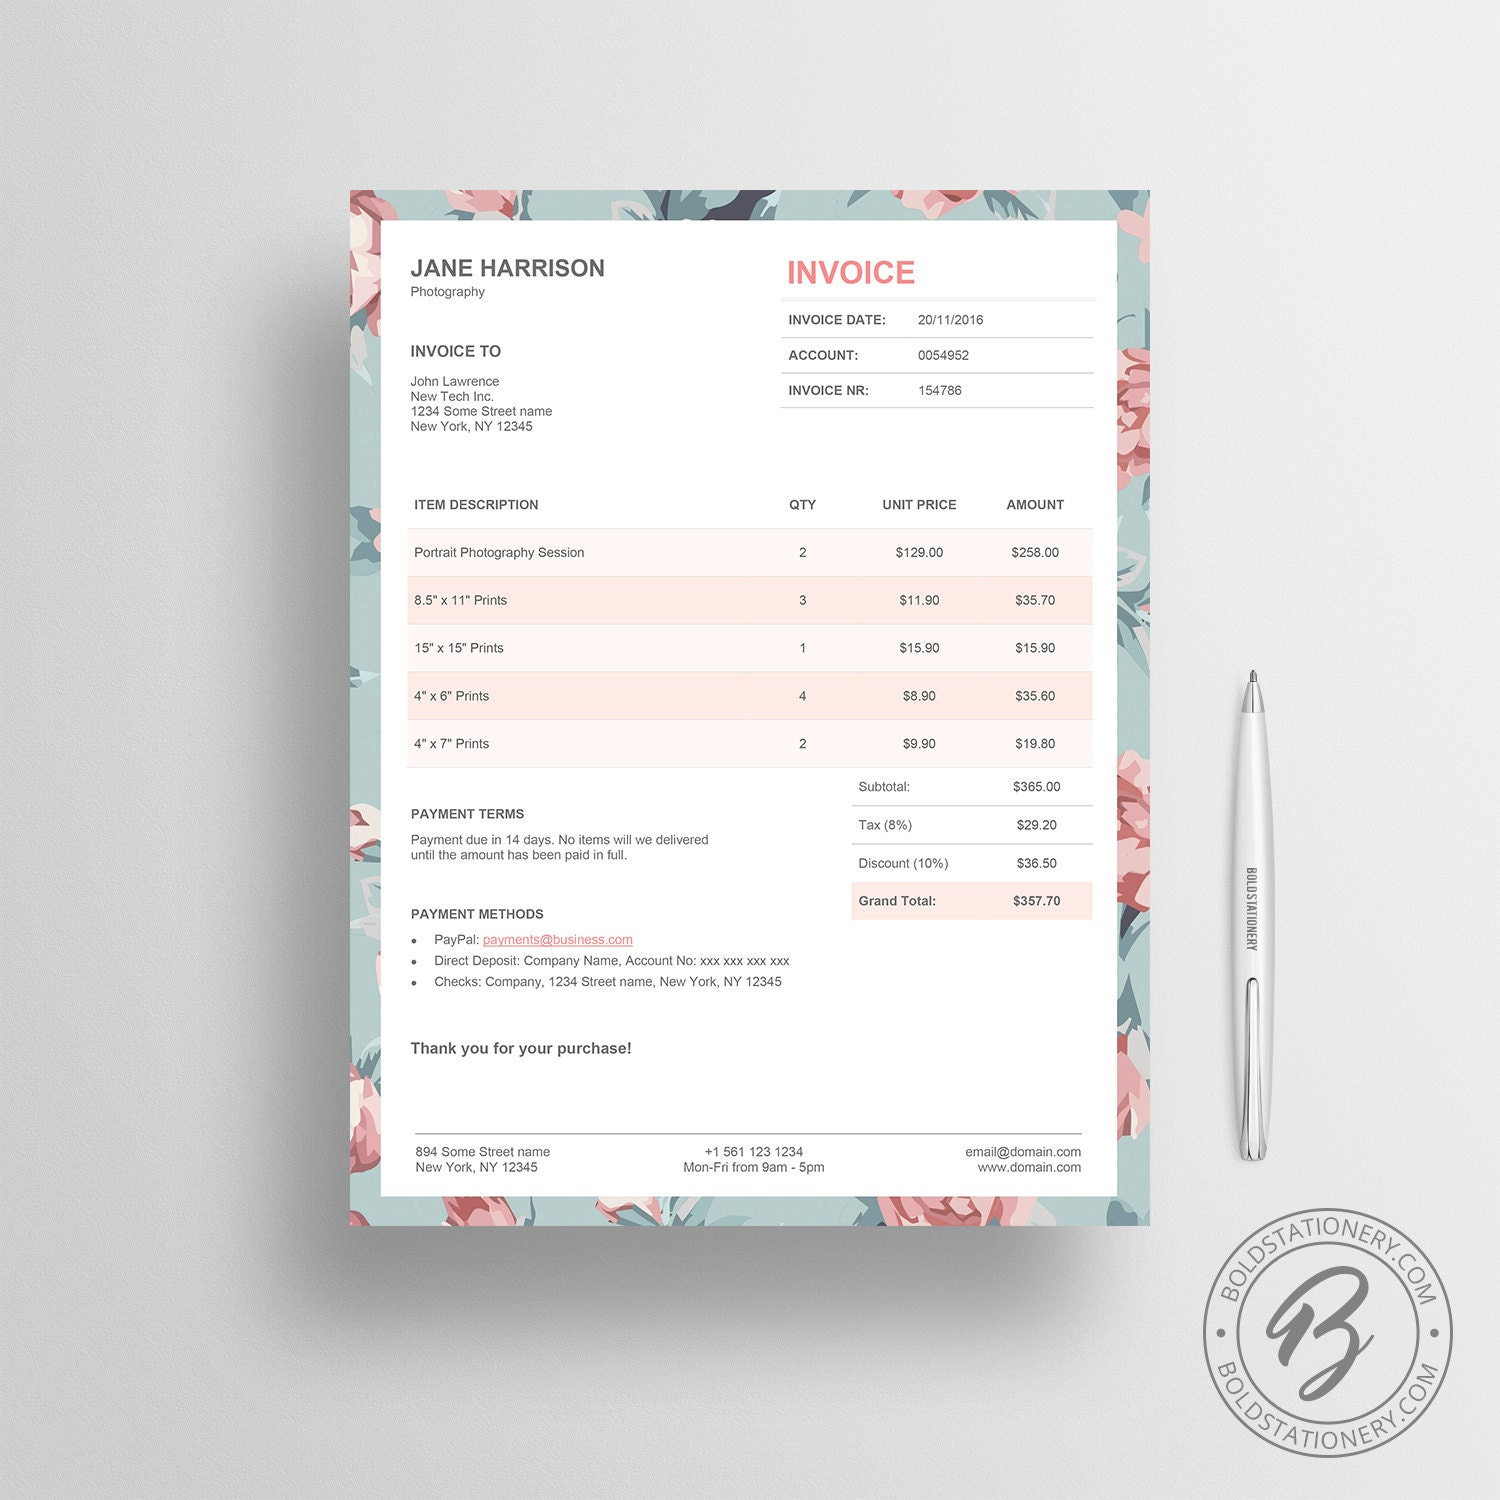 invoice template 02 photography invoice receipt template. Black Bedroom Furniture Sets. Home Design Ideas